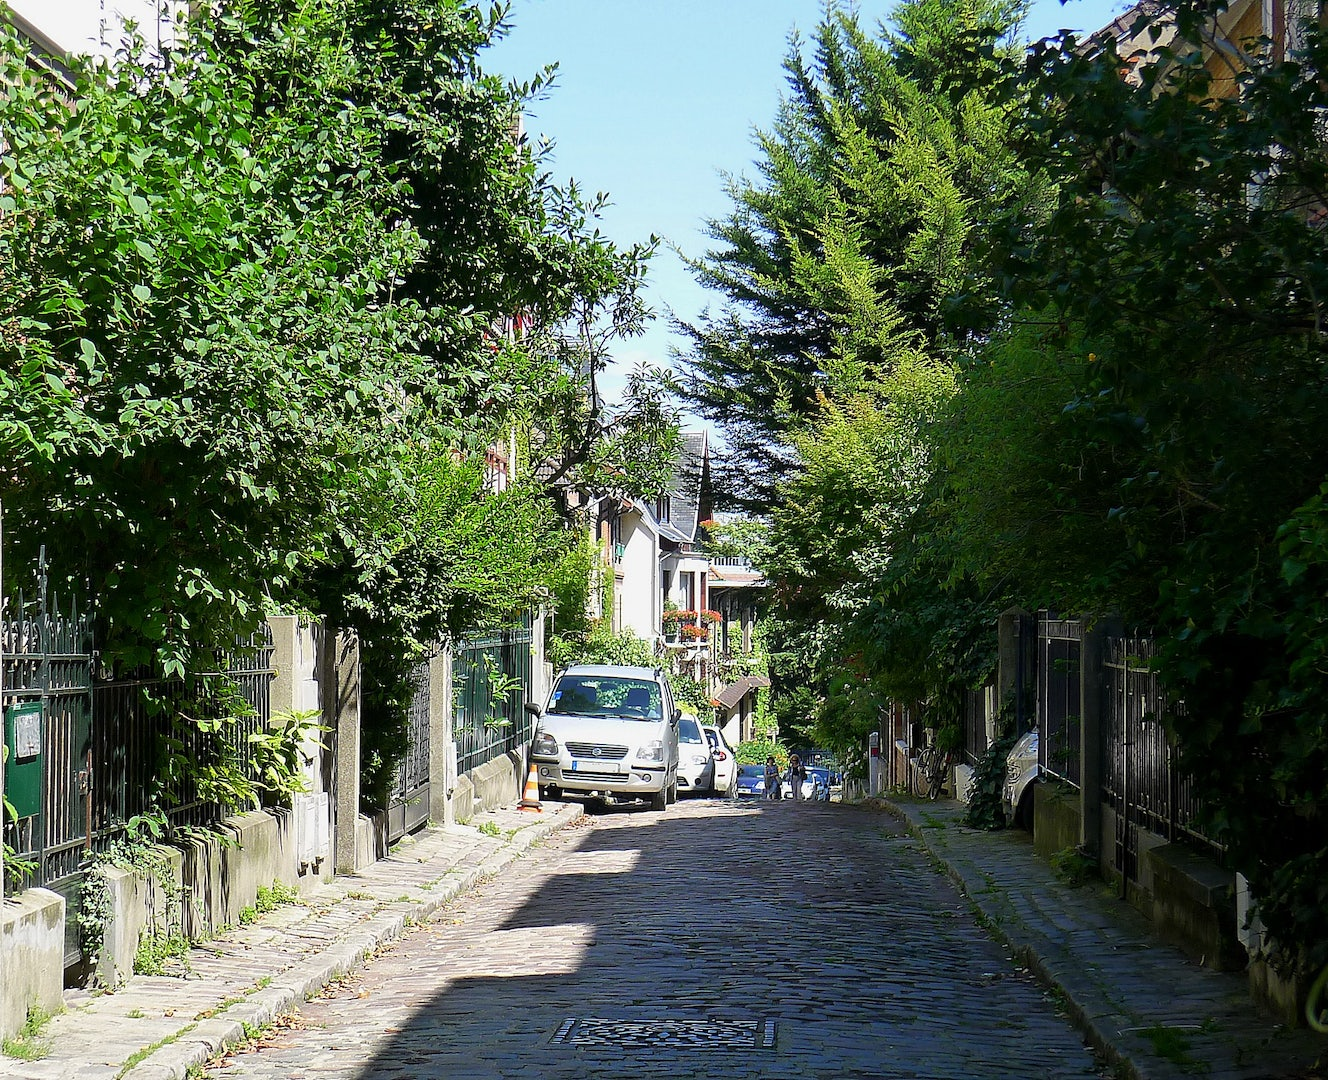 cobbled lane at Square de Montsouris